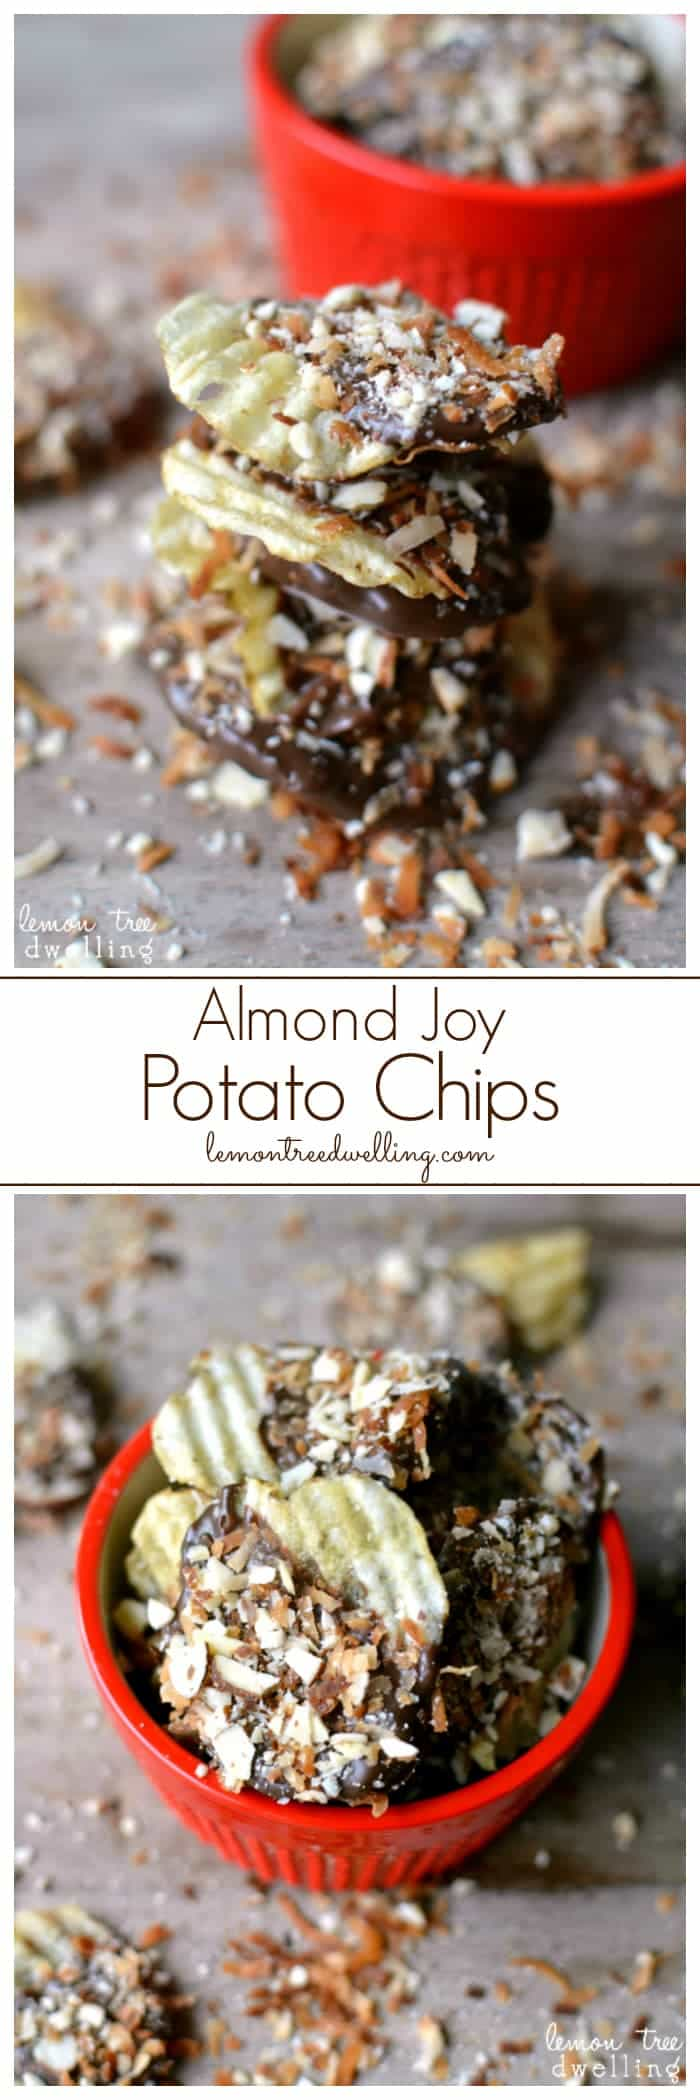 Almond Joy Potato Chips. Salty-sweet and delicious!